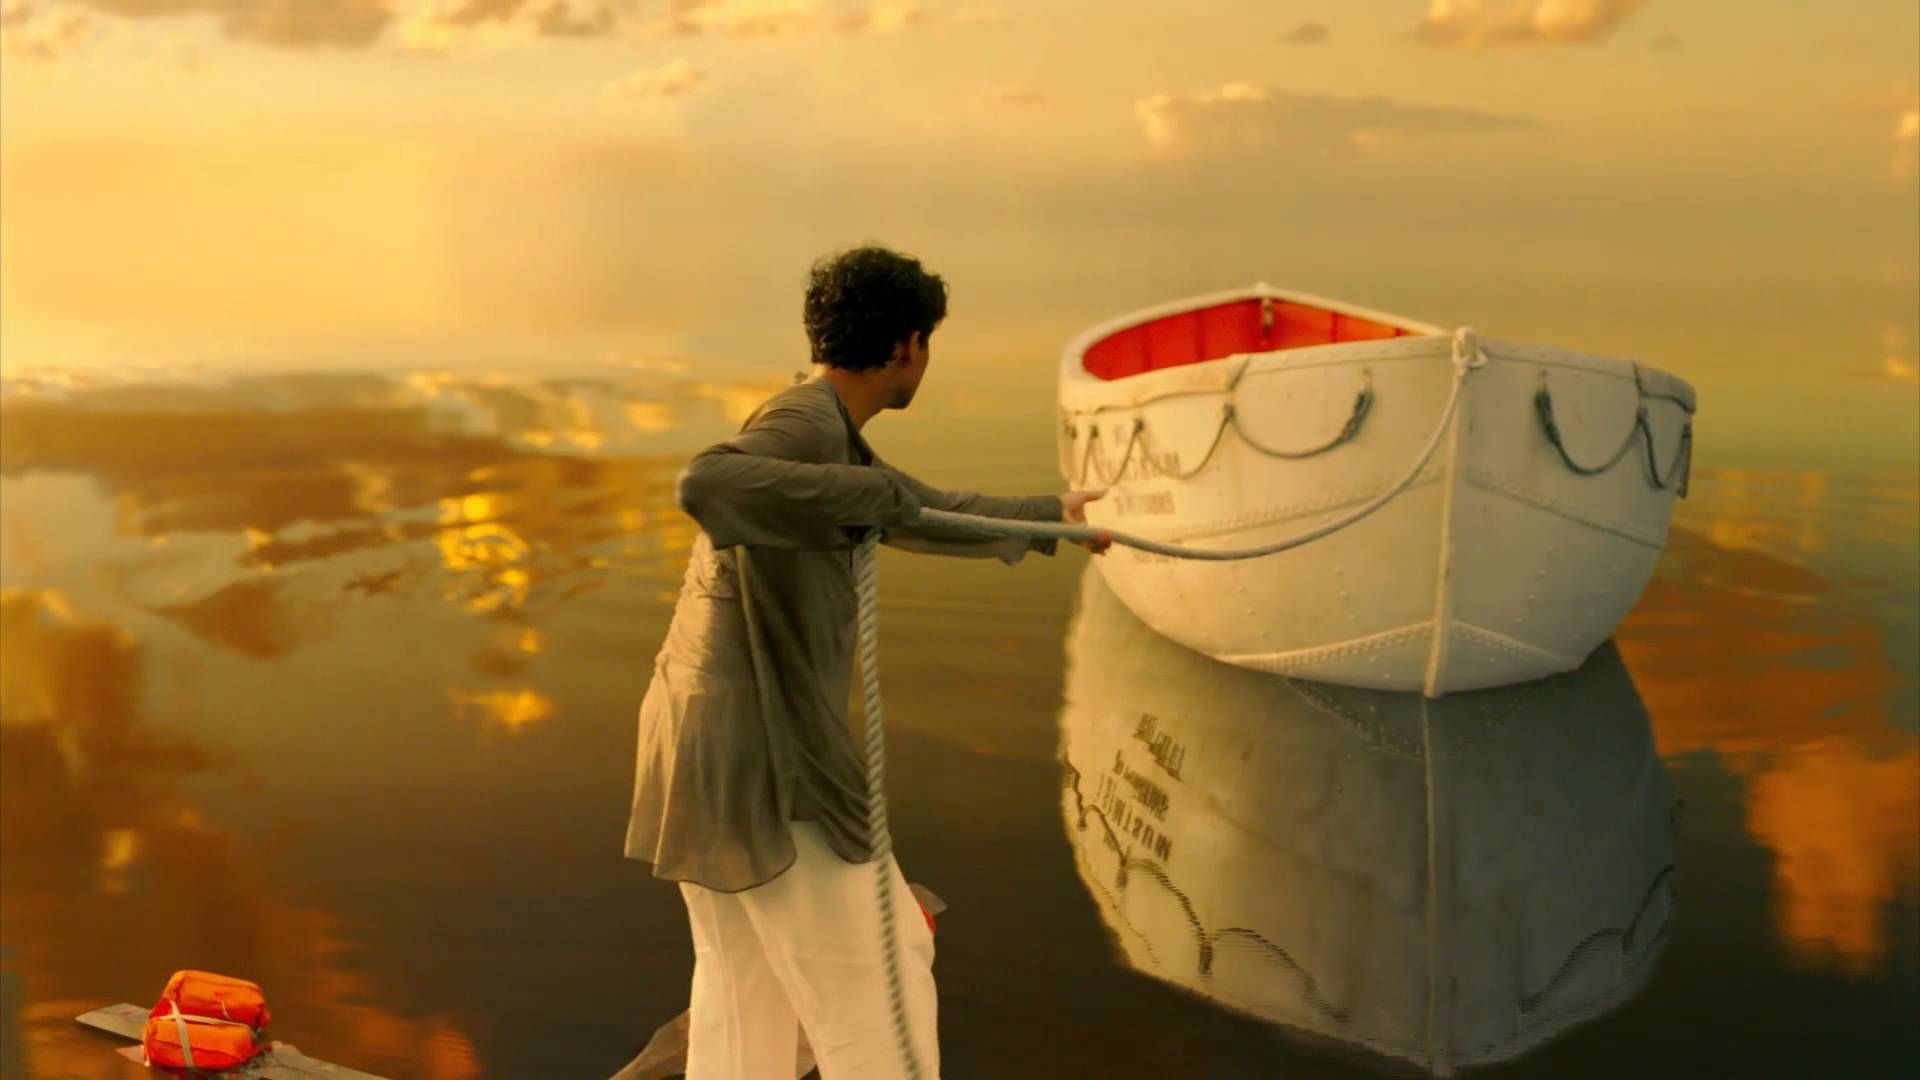 best ideas about life of pi trailer life of pi 17 best ideas about life of pi trailer life of pi film life of pi book and life of pi 2012